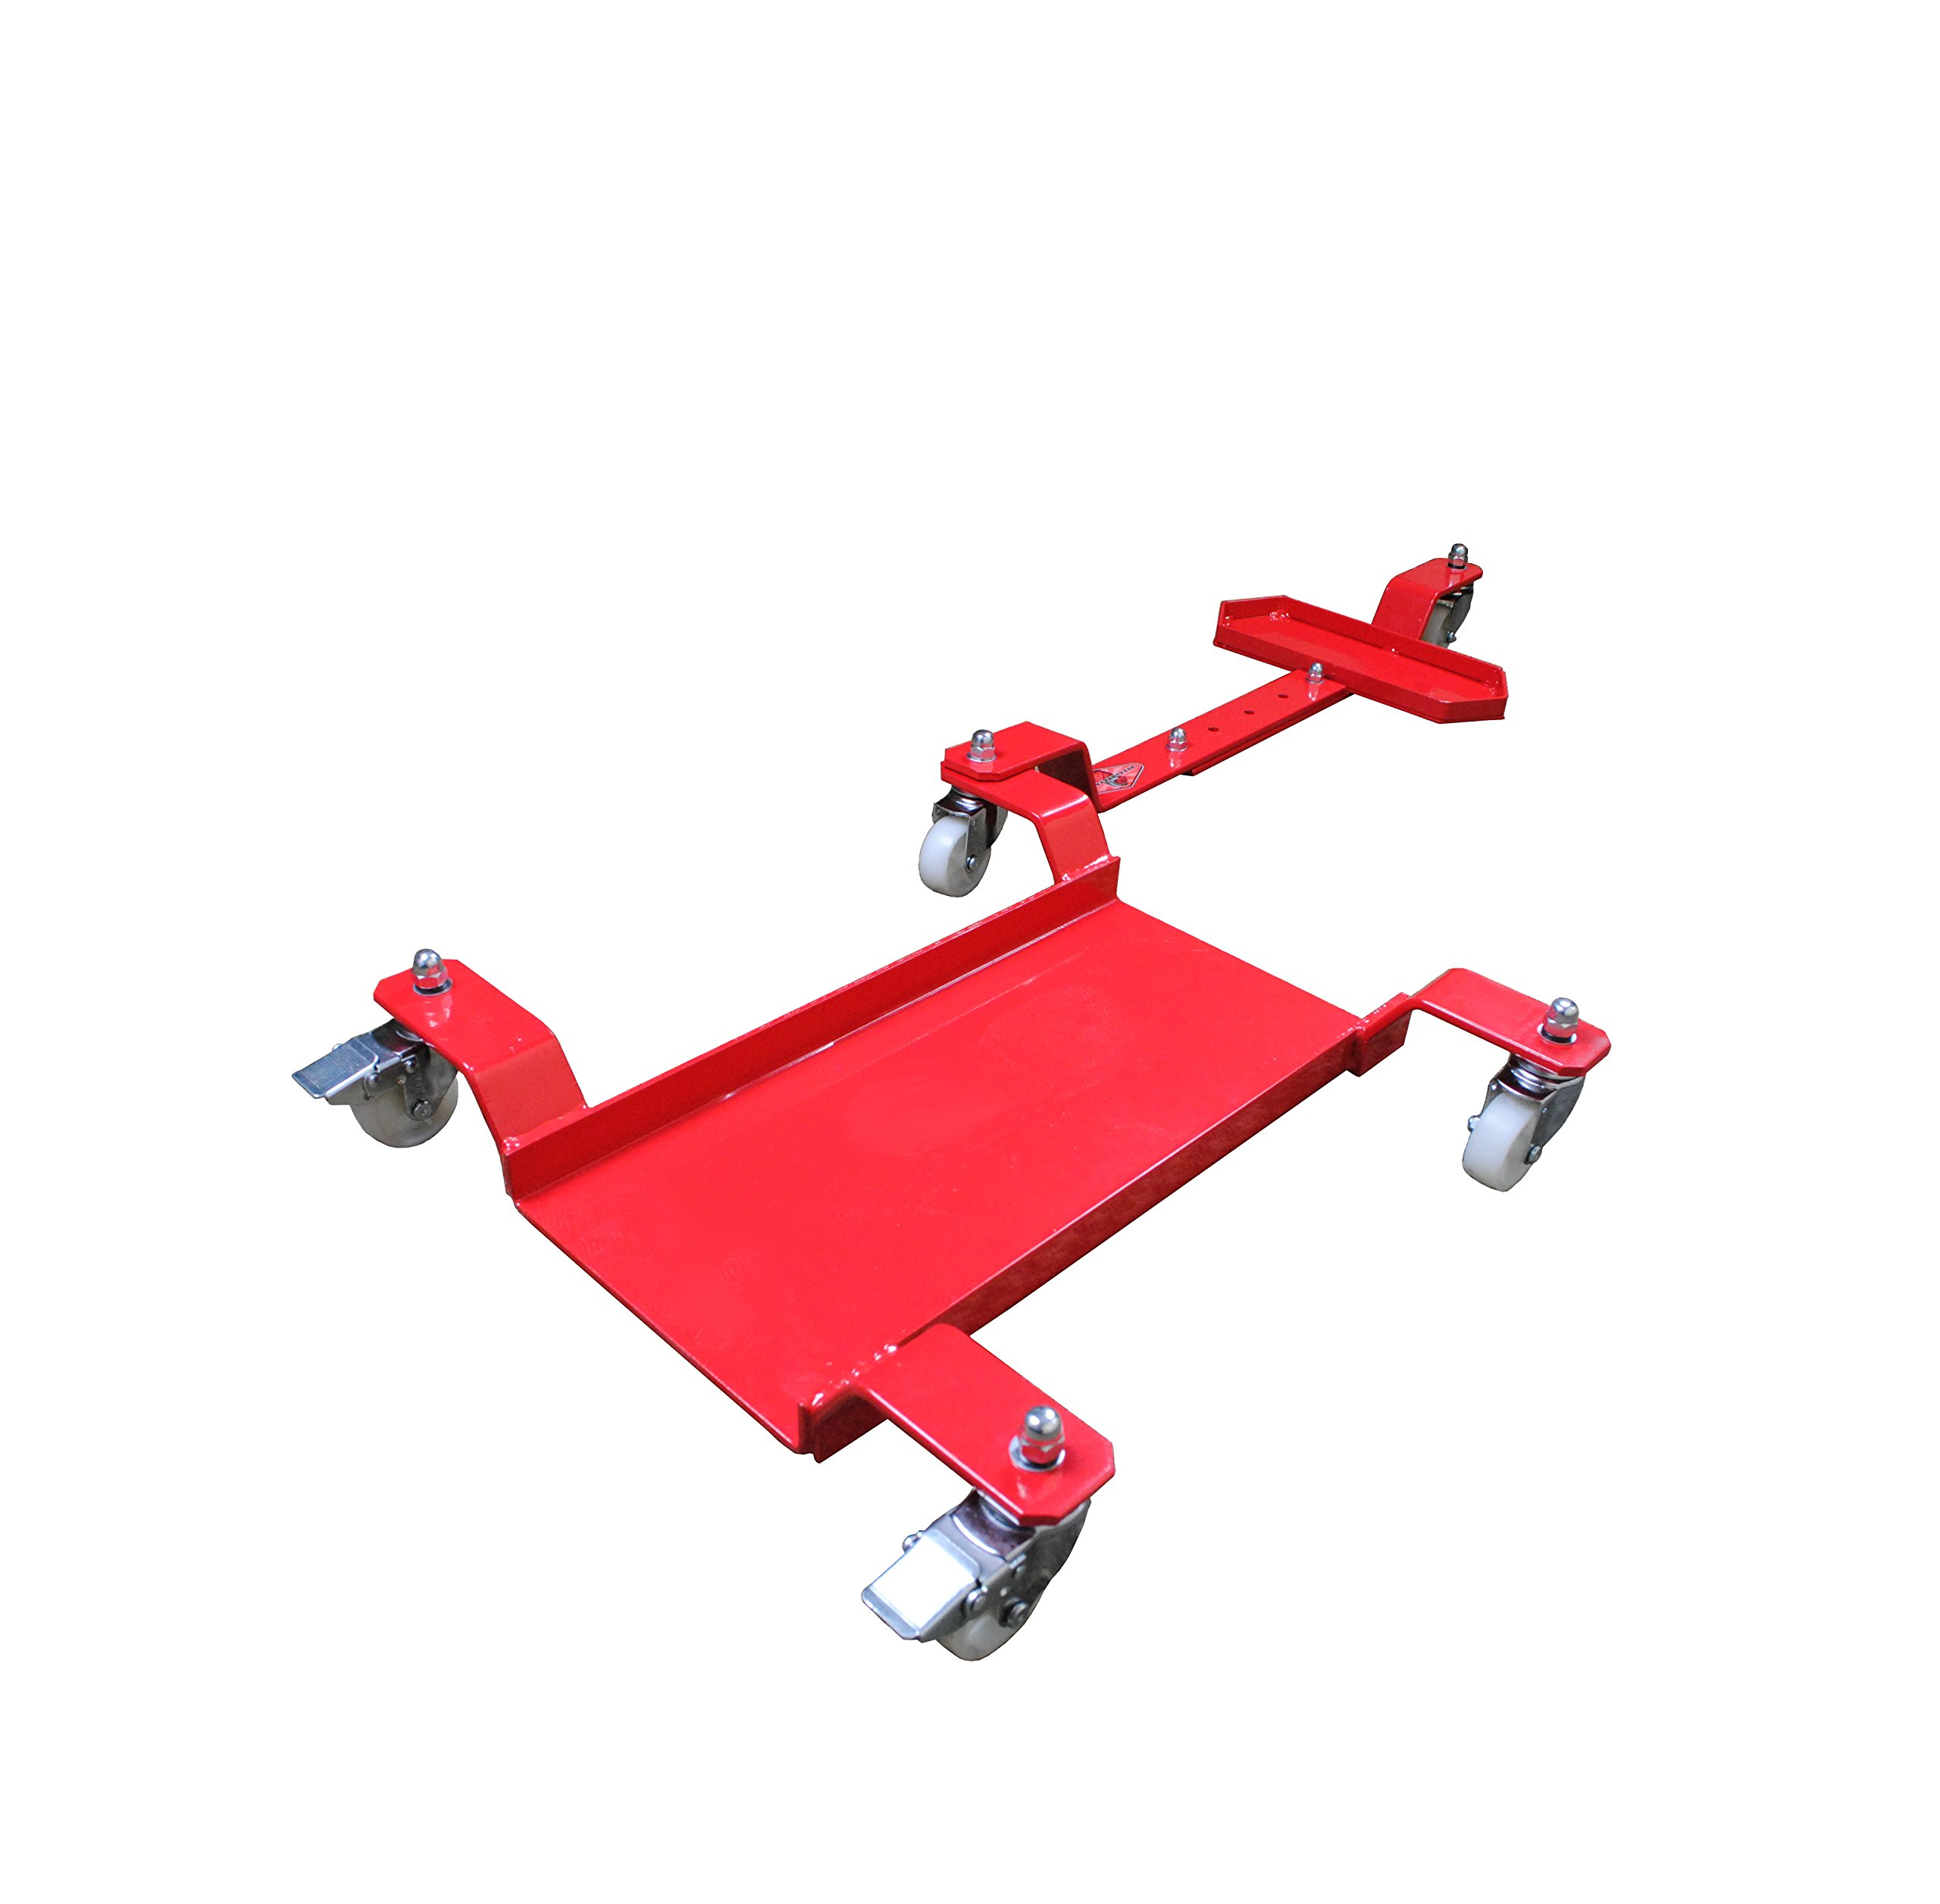 Big Horn Motorcycle Dolly | Generation 2 Low Profile Design | 1250 LBS Capacity | Adjustable For Sports Bikes Or Cruisers by Big Horn (Image #4)